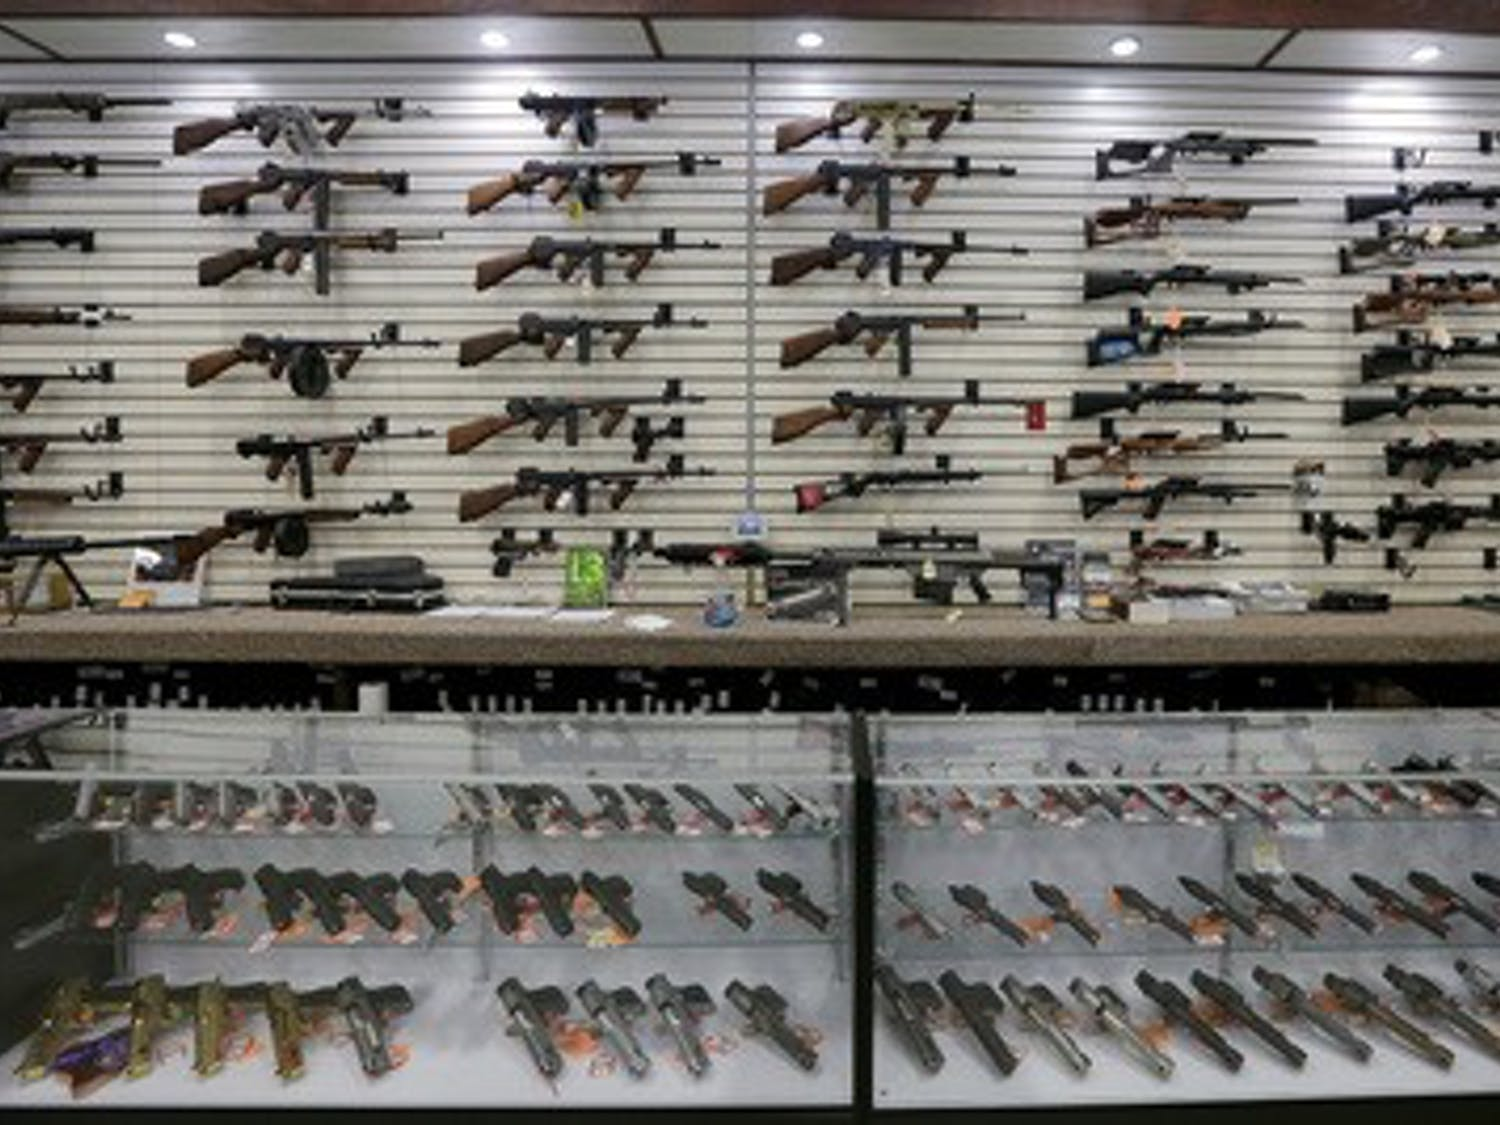 This year is likely to be another big year for firearms laws in the states. (David Maialetti/Philadelphia Inquirer/TNS)